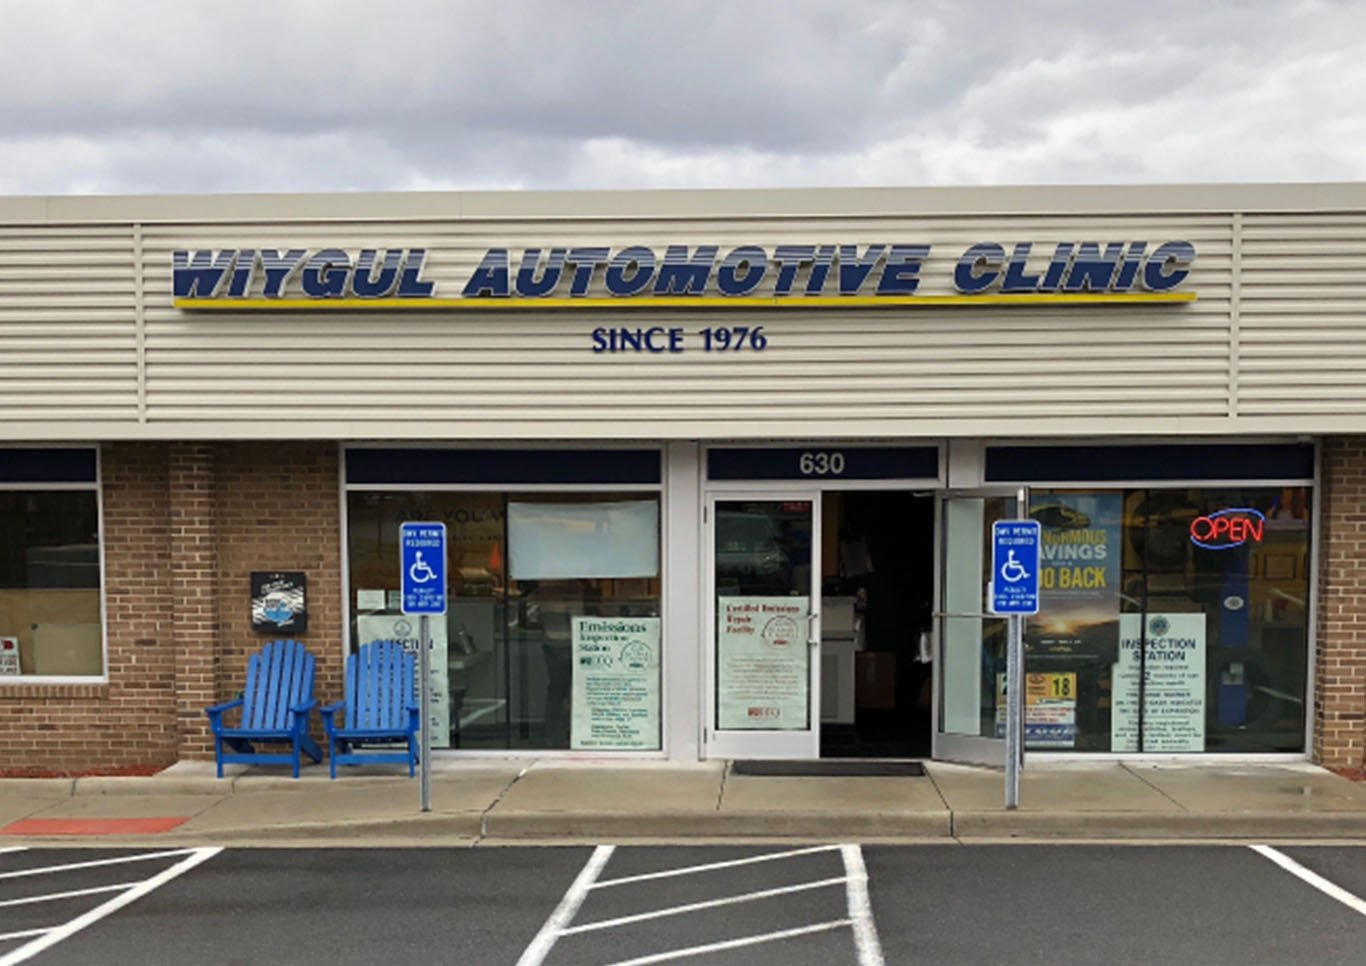 Wiygul Automotive Clinic's storefront before the tune-up.